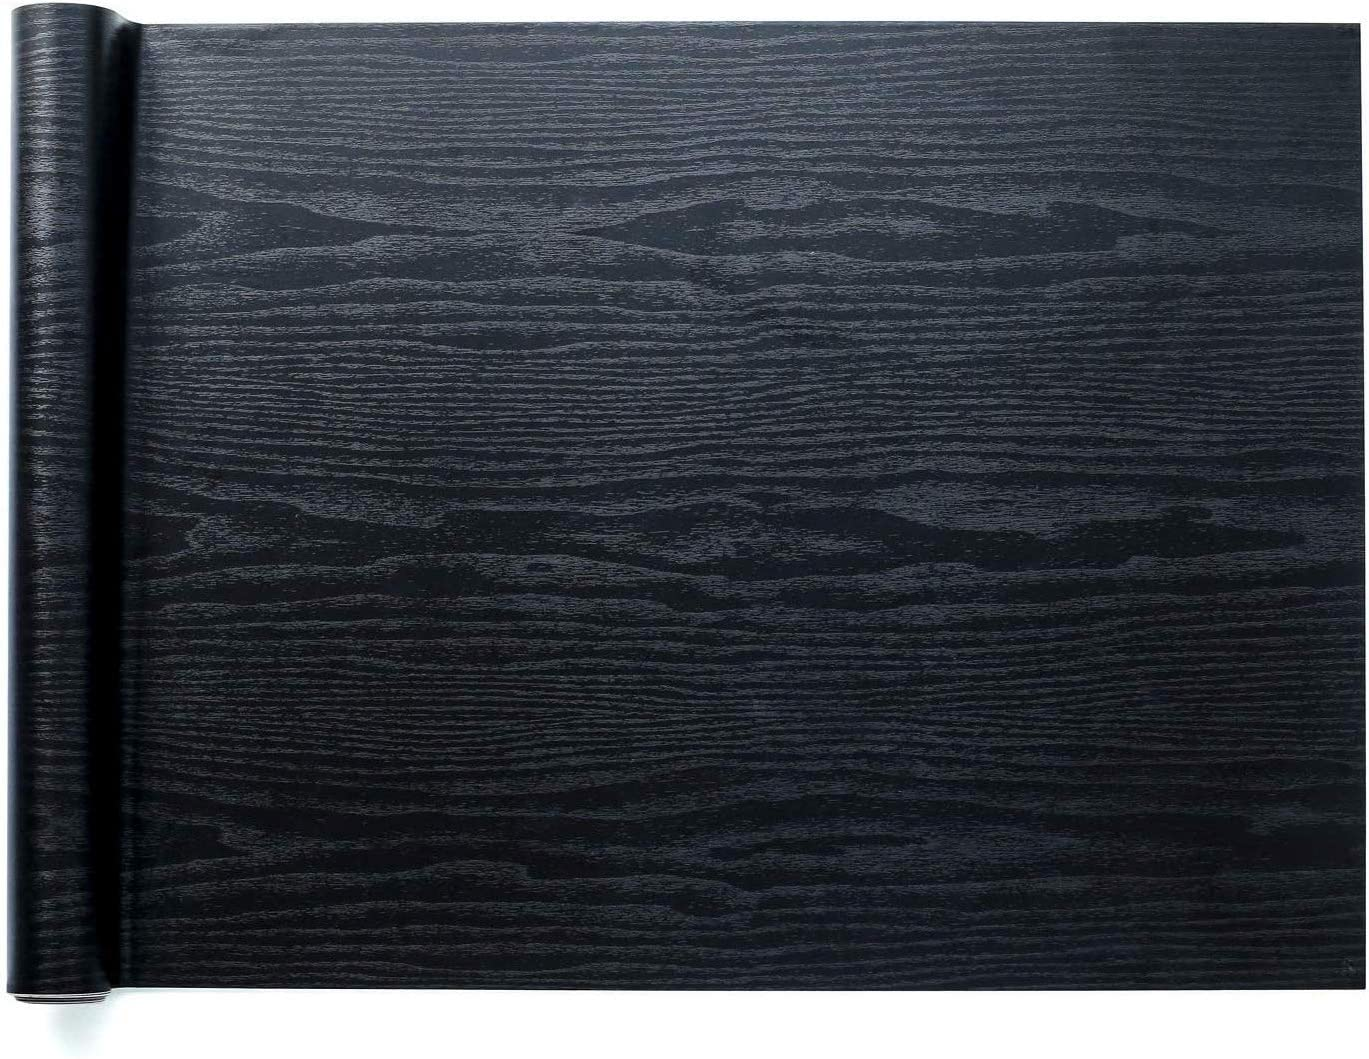 """Homein Black Wood Self Adhesive Paper 23.6""""x78.7"""" Decorative Self-Adhesive Film Wood Grain Wallpaper Peel and Stick Waterproof Wallpaper Black Vinyl Wallpaper for Cabinets Kitchen Furniture Countertop"""